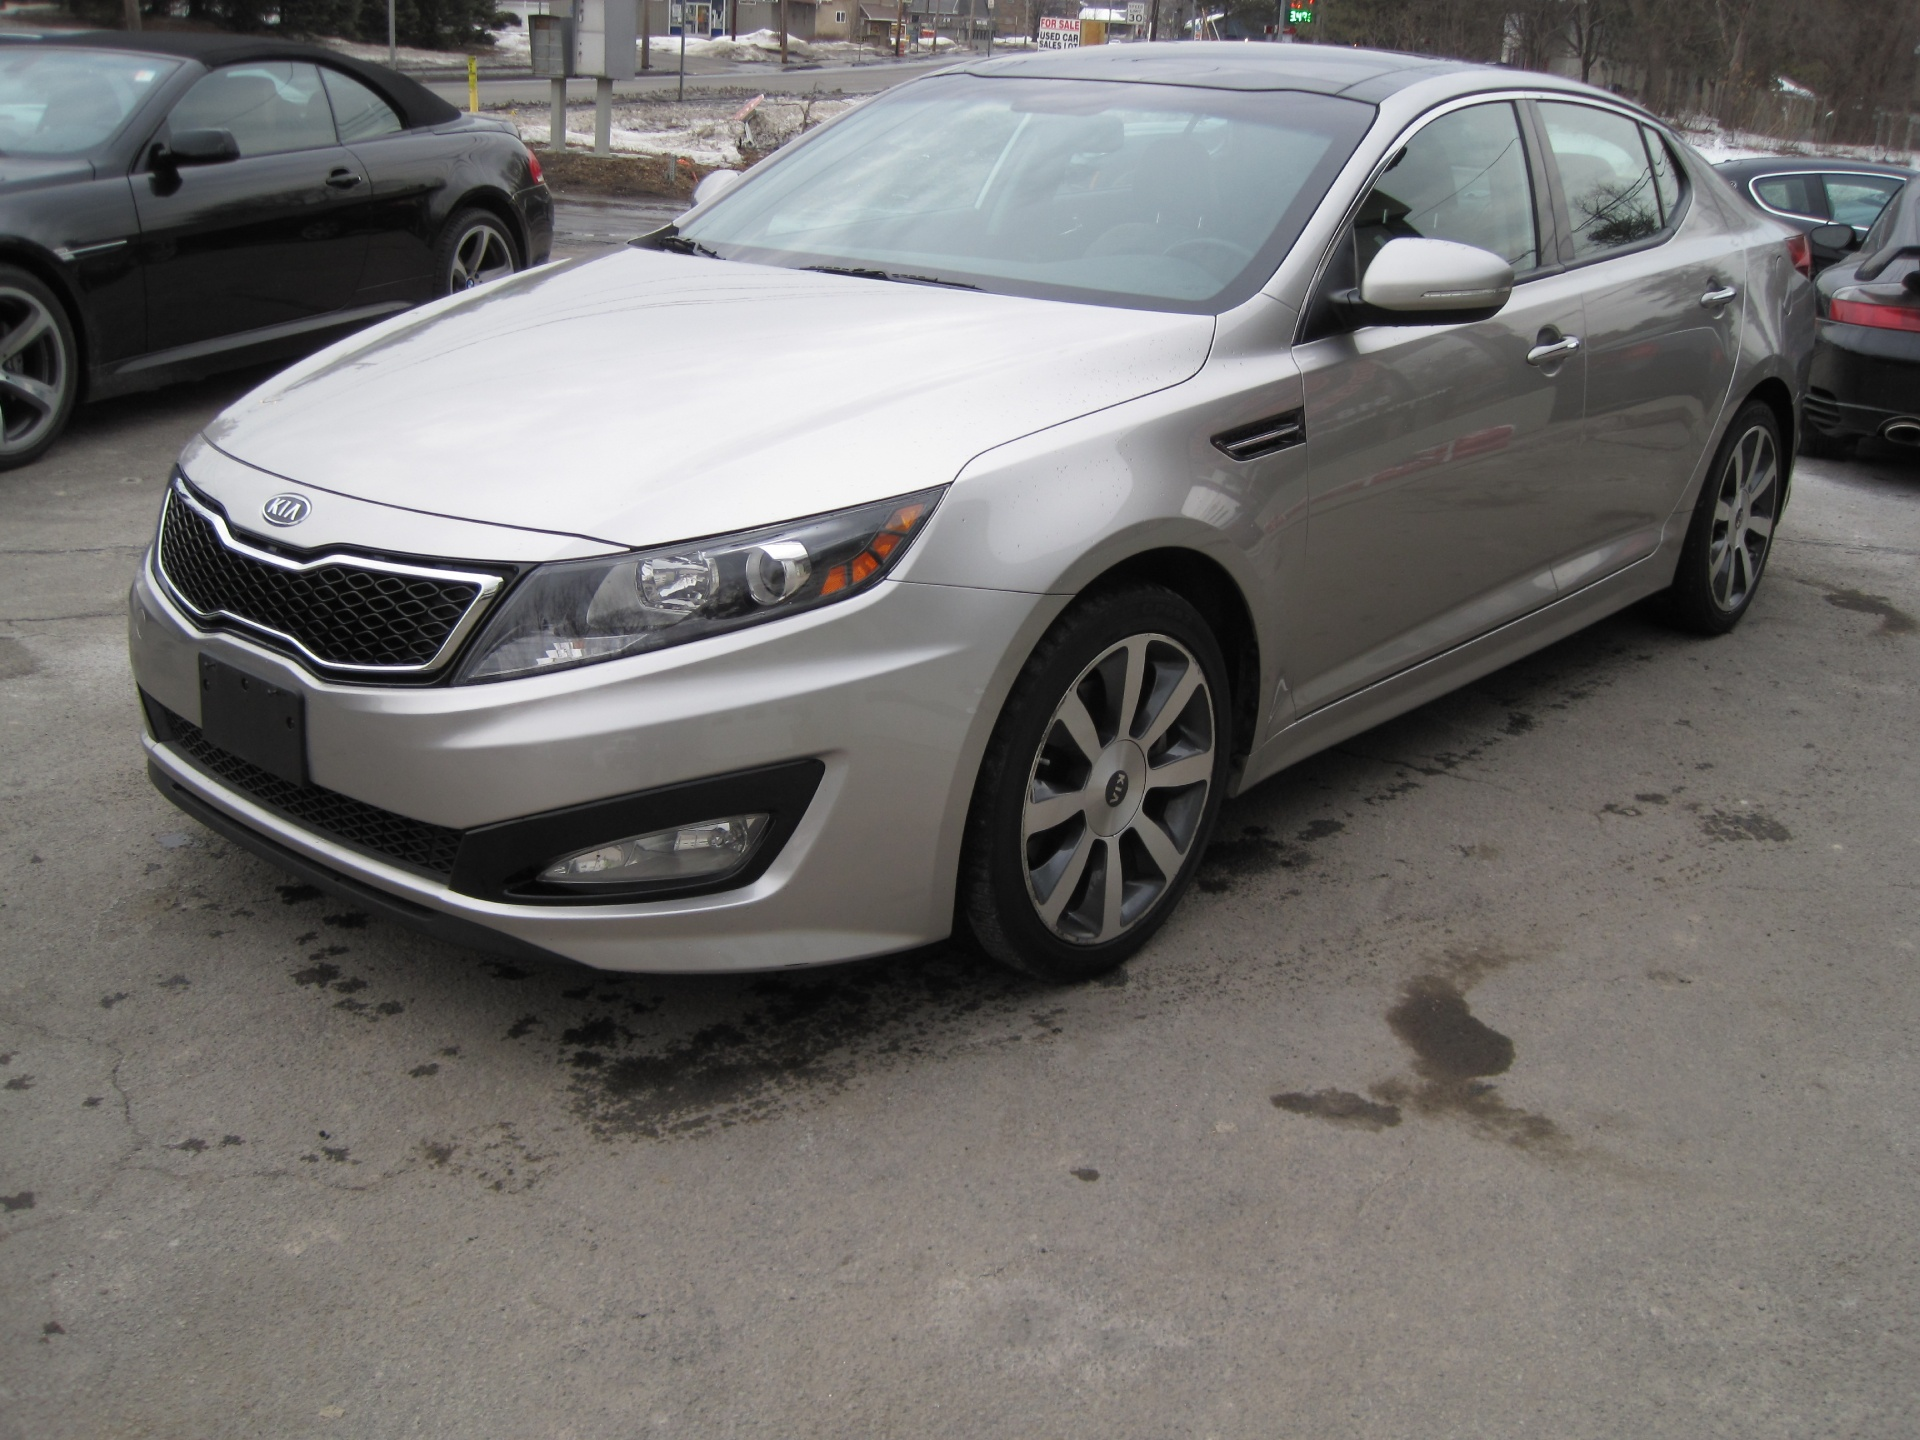 2011 Kia Optima SX Turbo 1 OWNER PANORAMIC ROOF HEATD AND COOLED